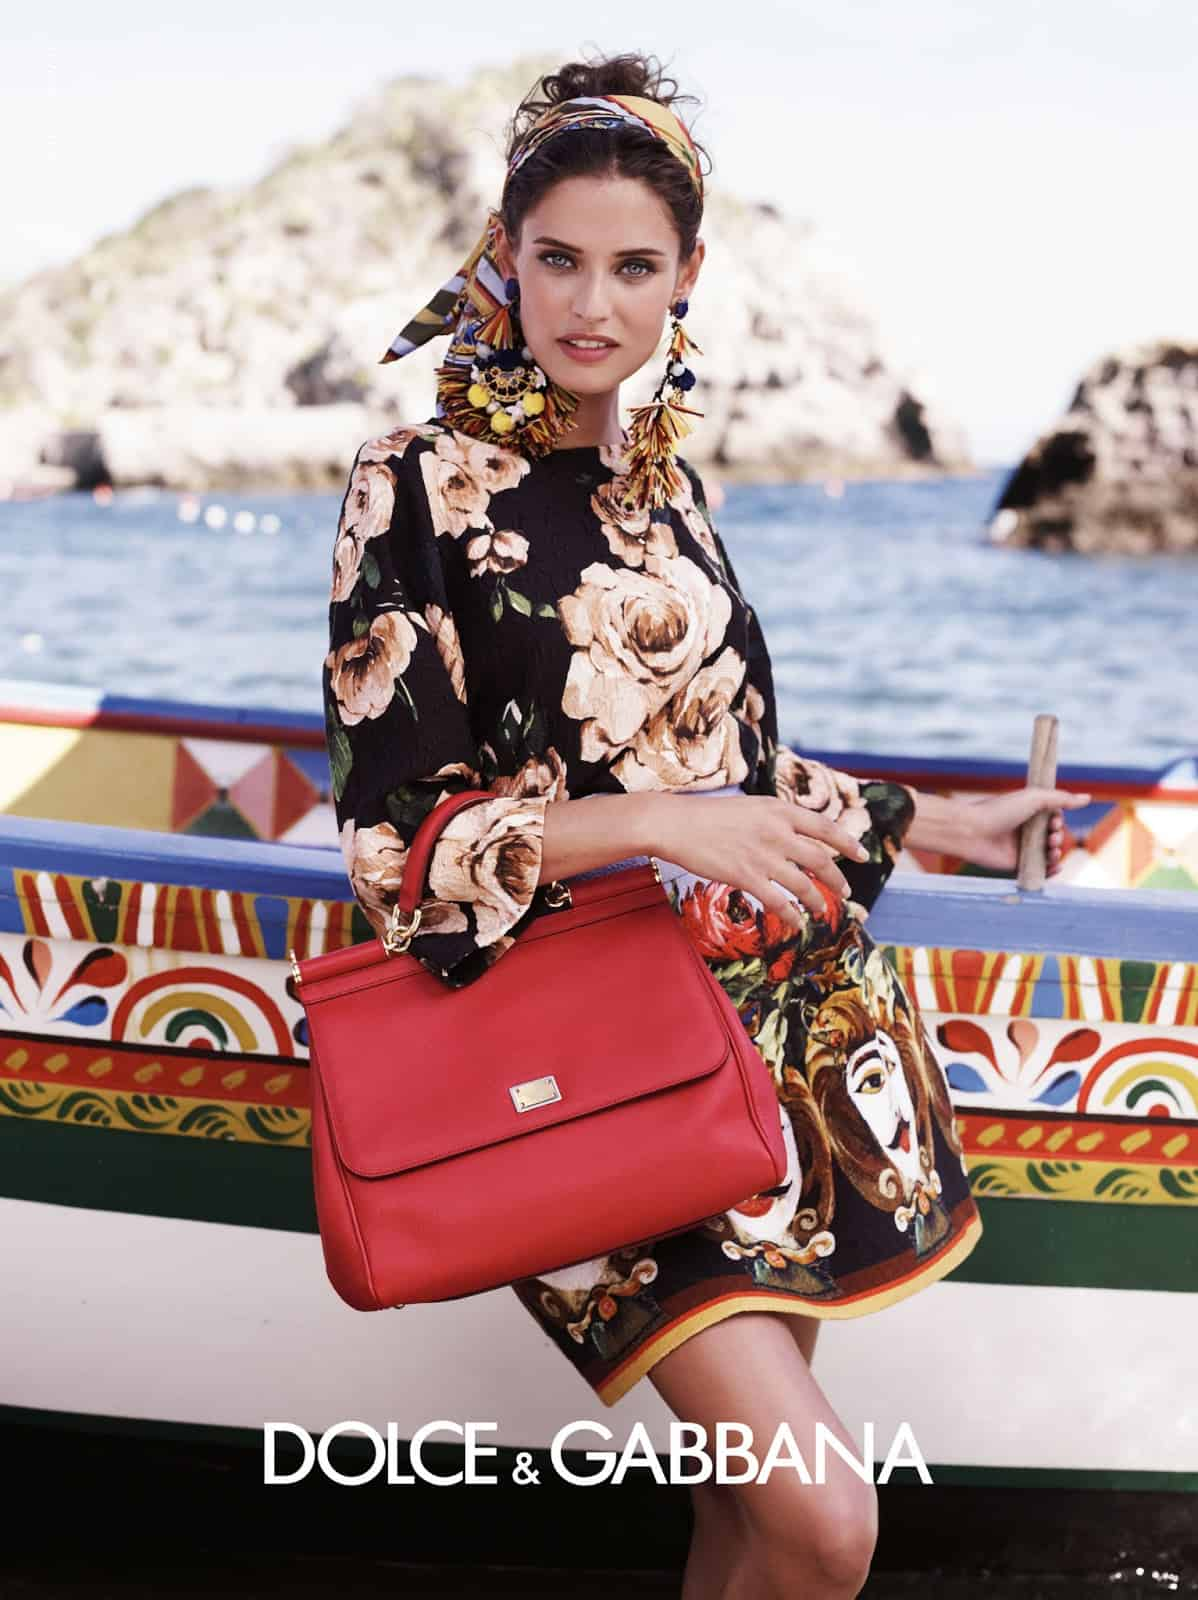 dolce-gabbana-flower-prints